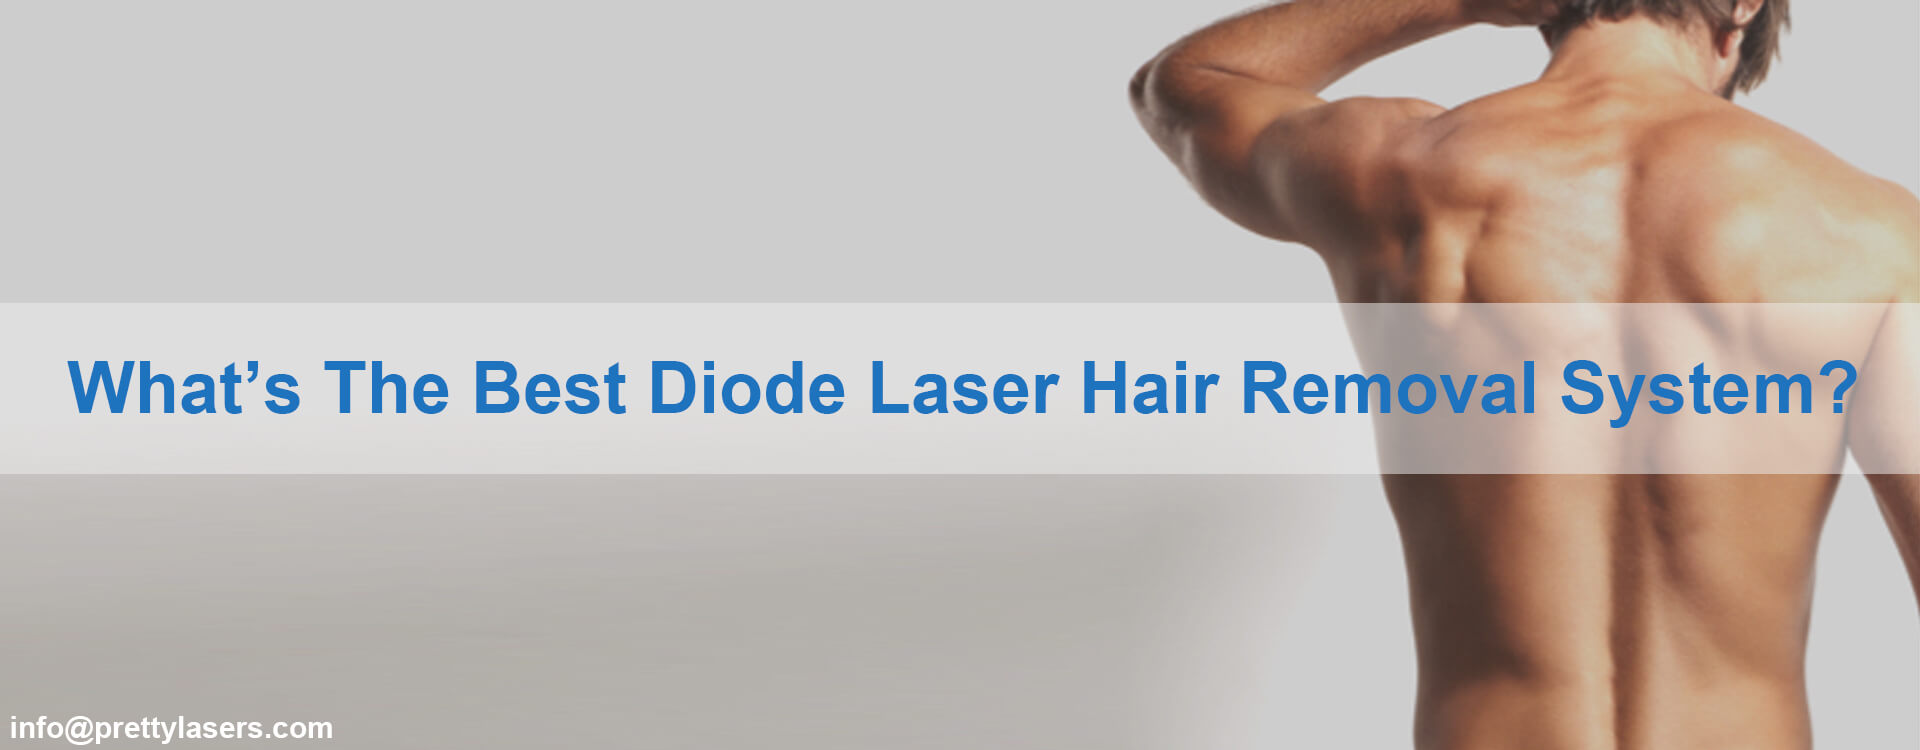 What's The Best Diode Laser Hair Removal System?